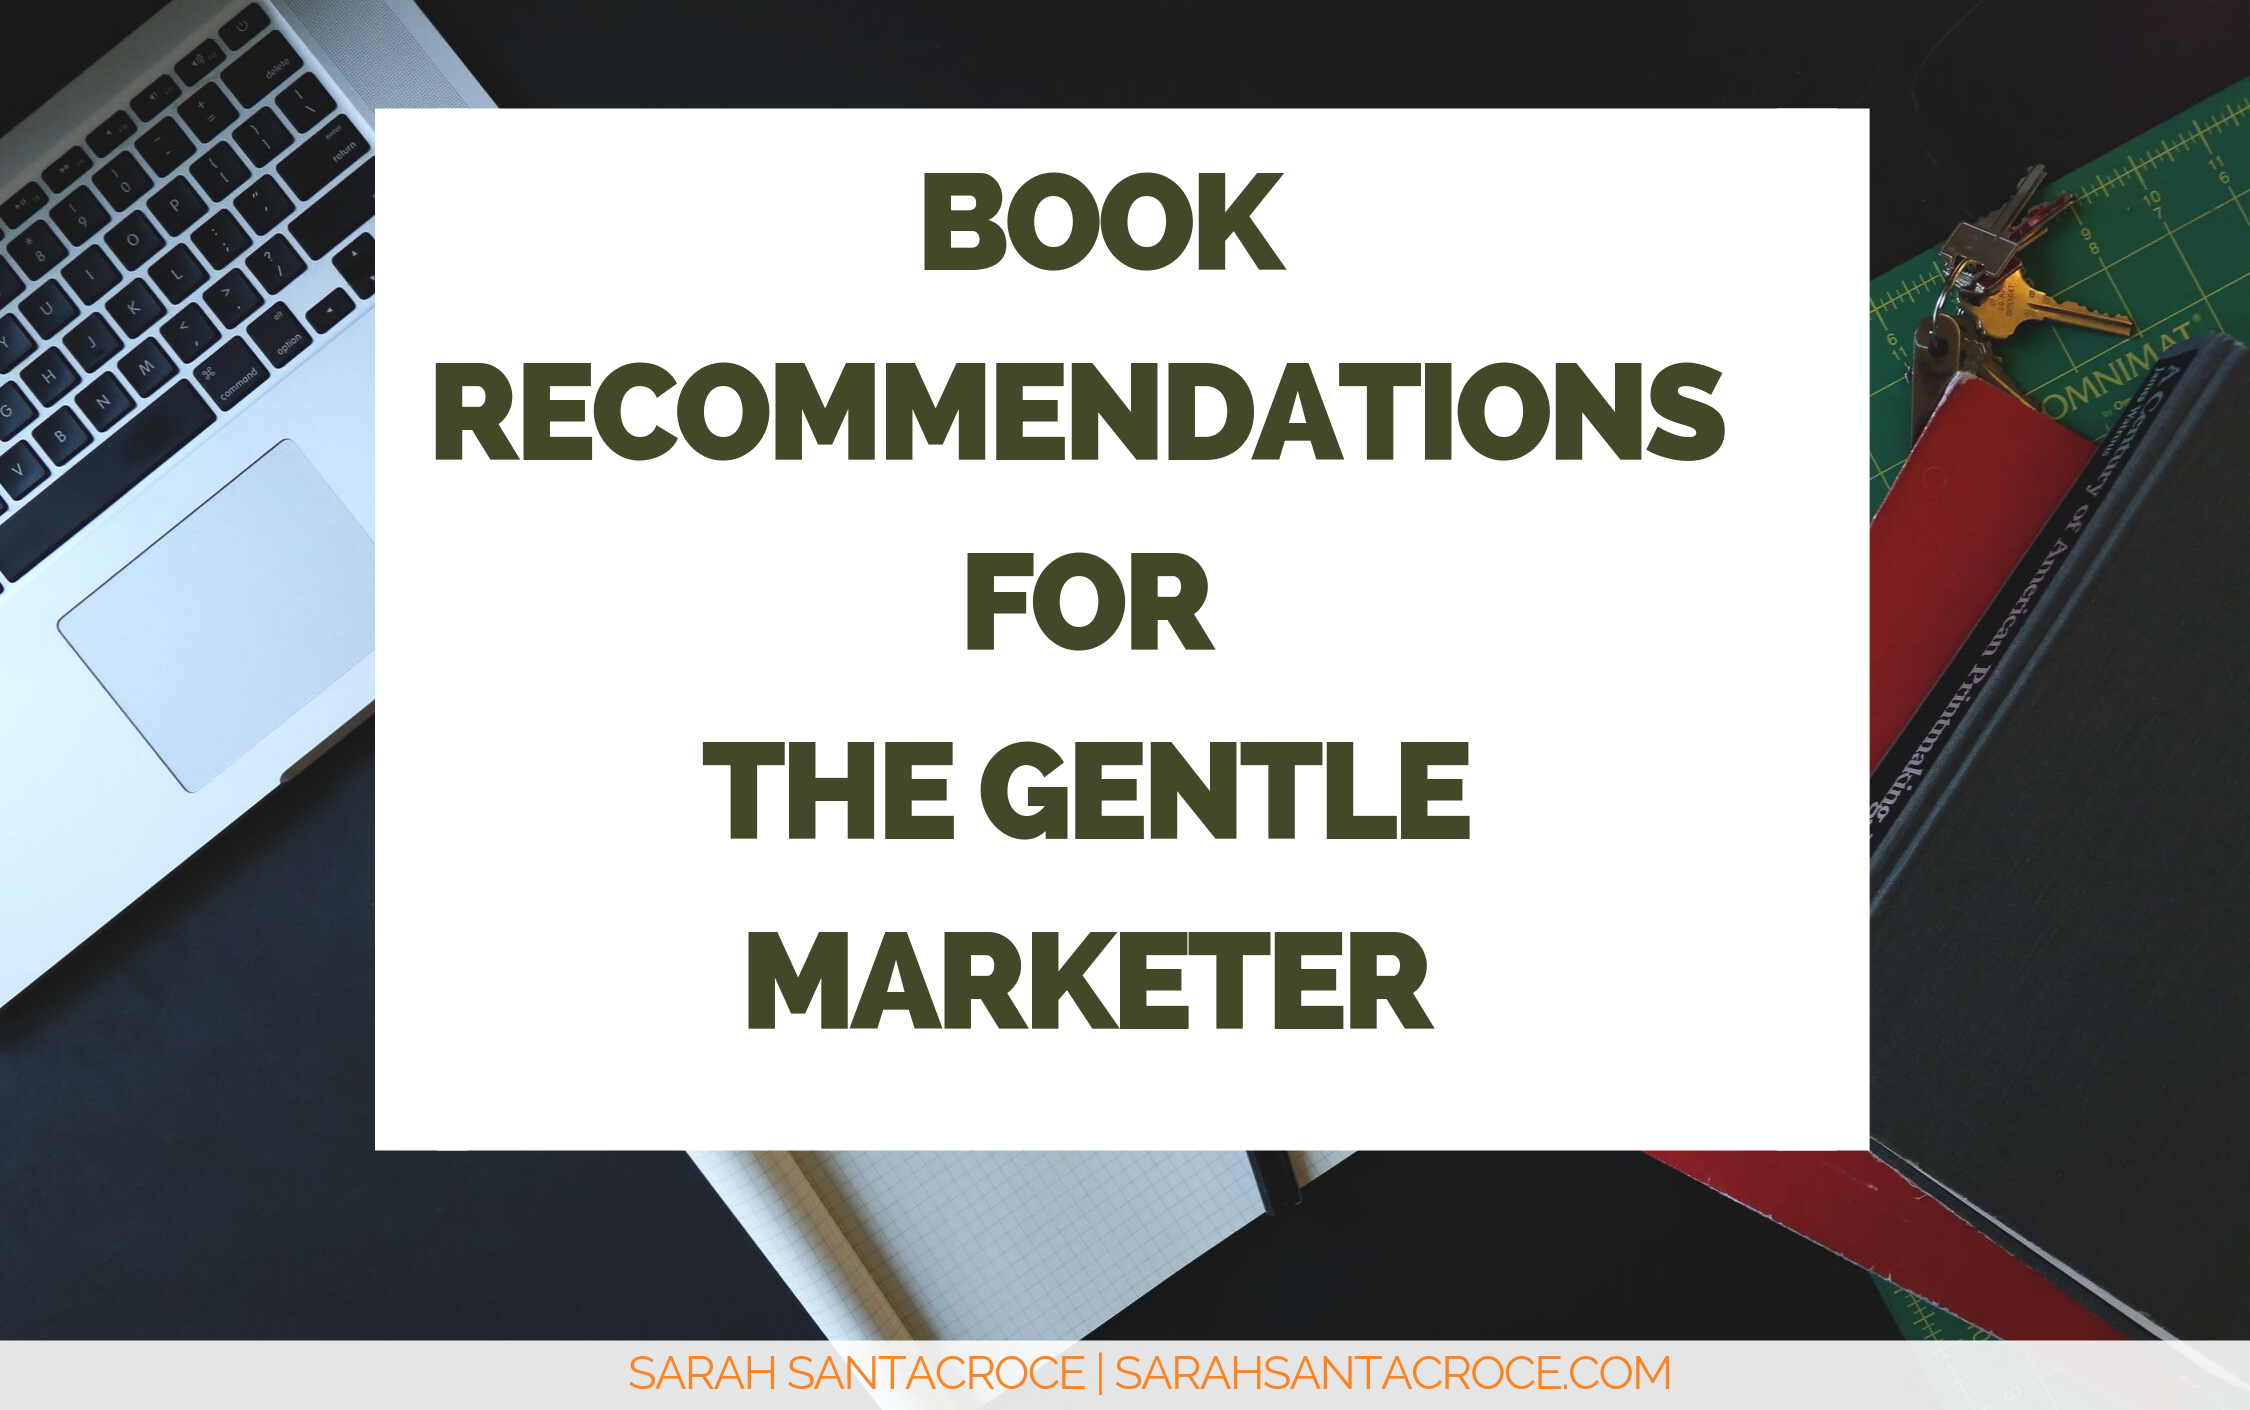 Book Recommendations for the Gentle Marketer